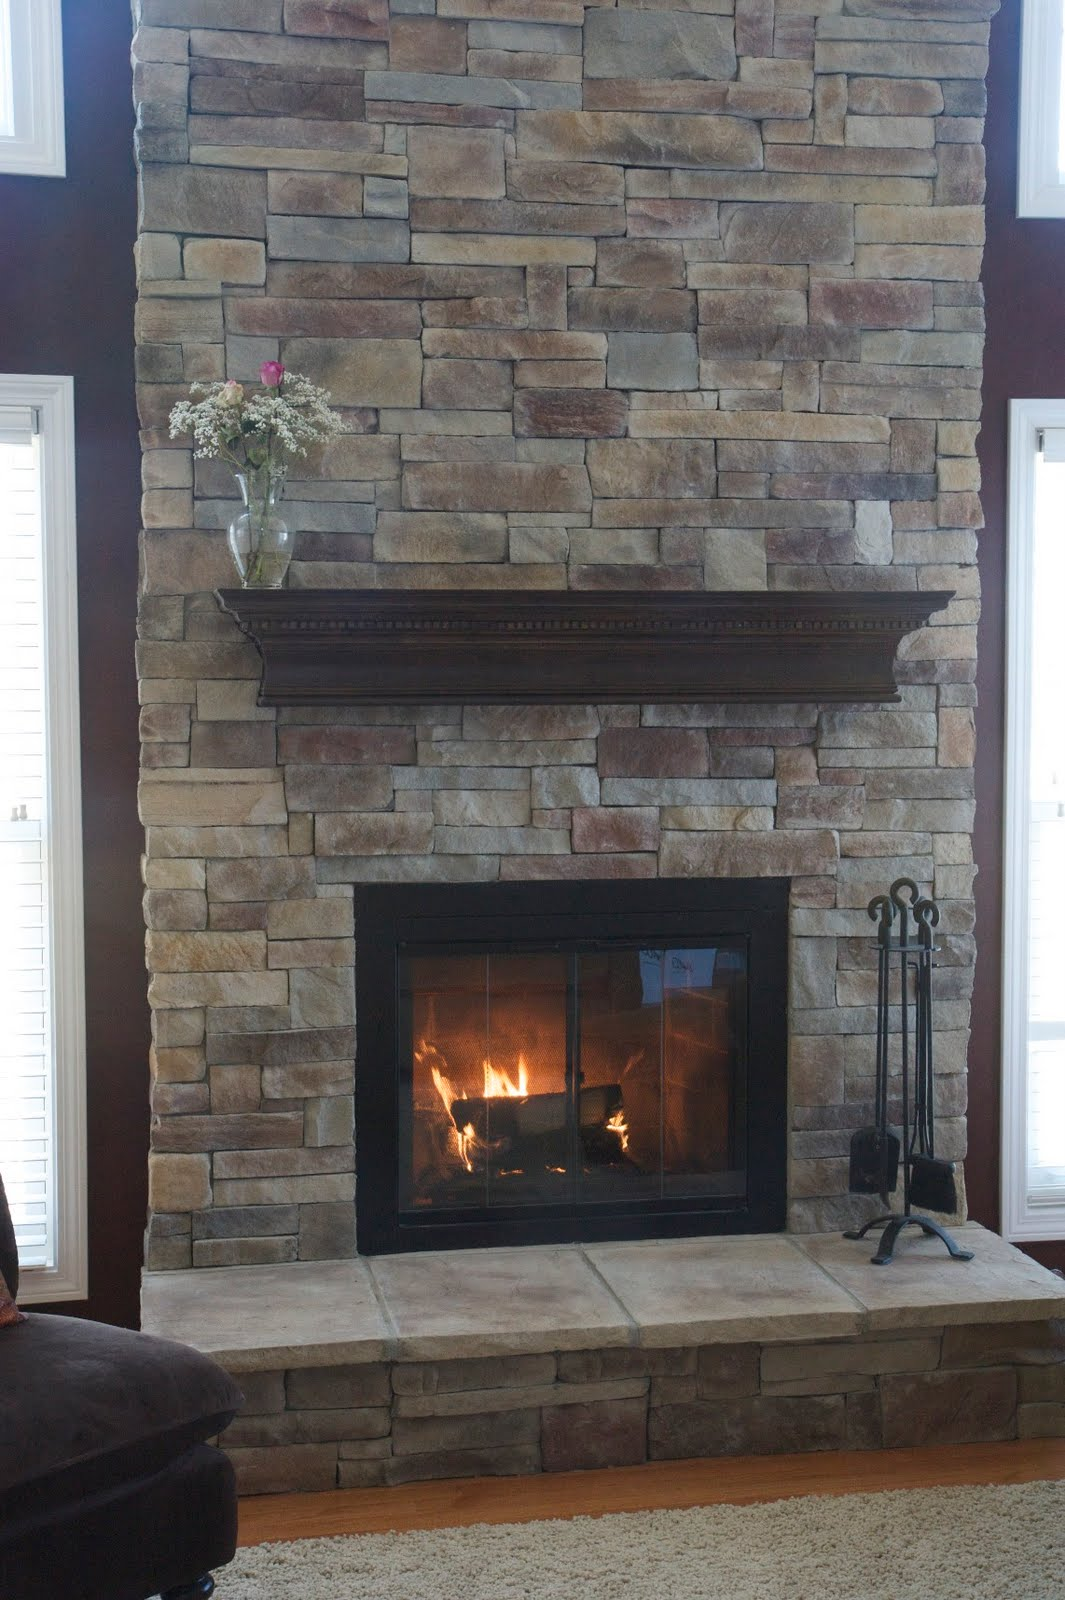 North Star Stone Stone Fireplaces Amp Stone Exteriors